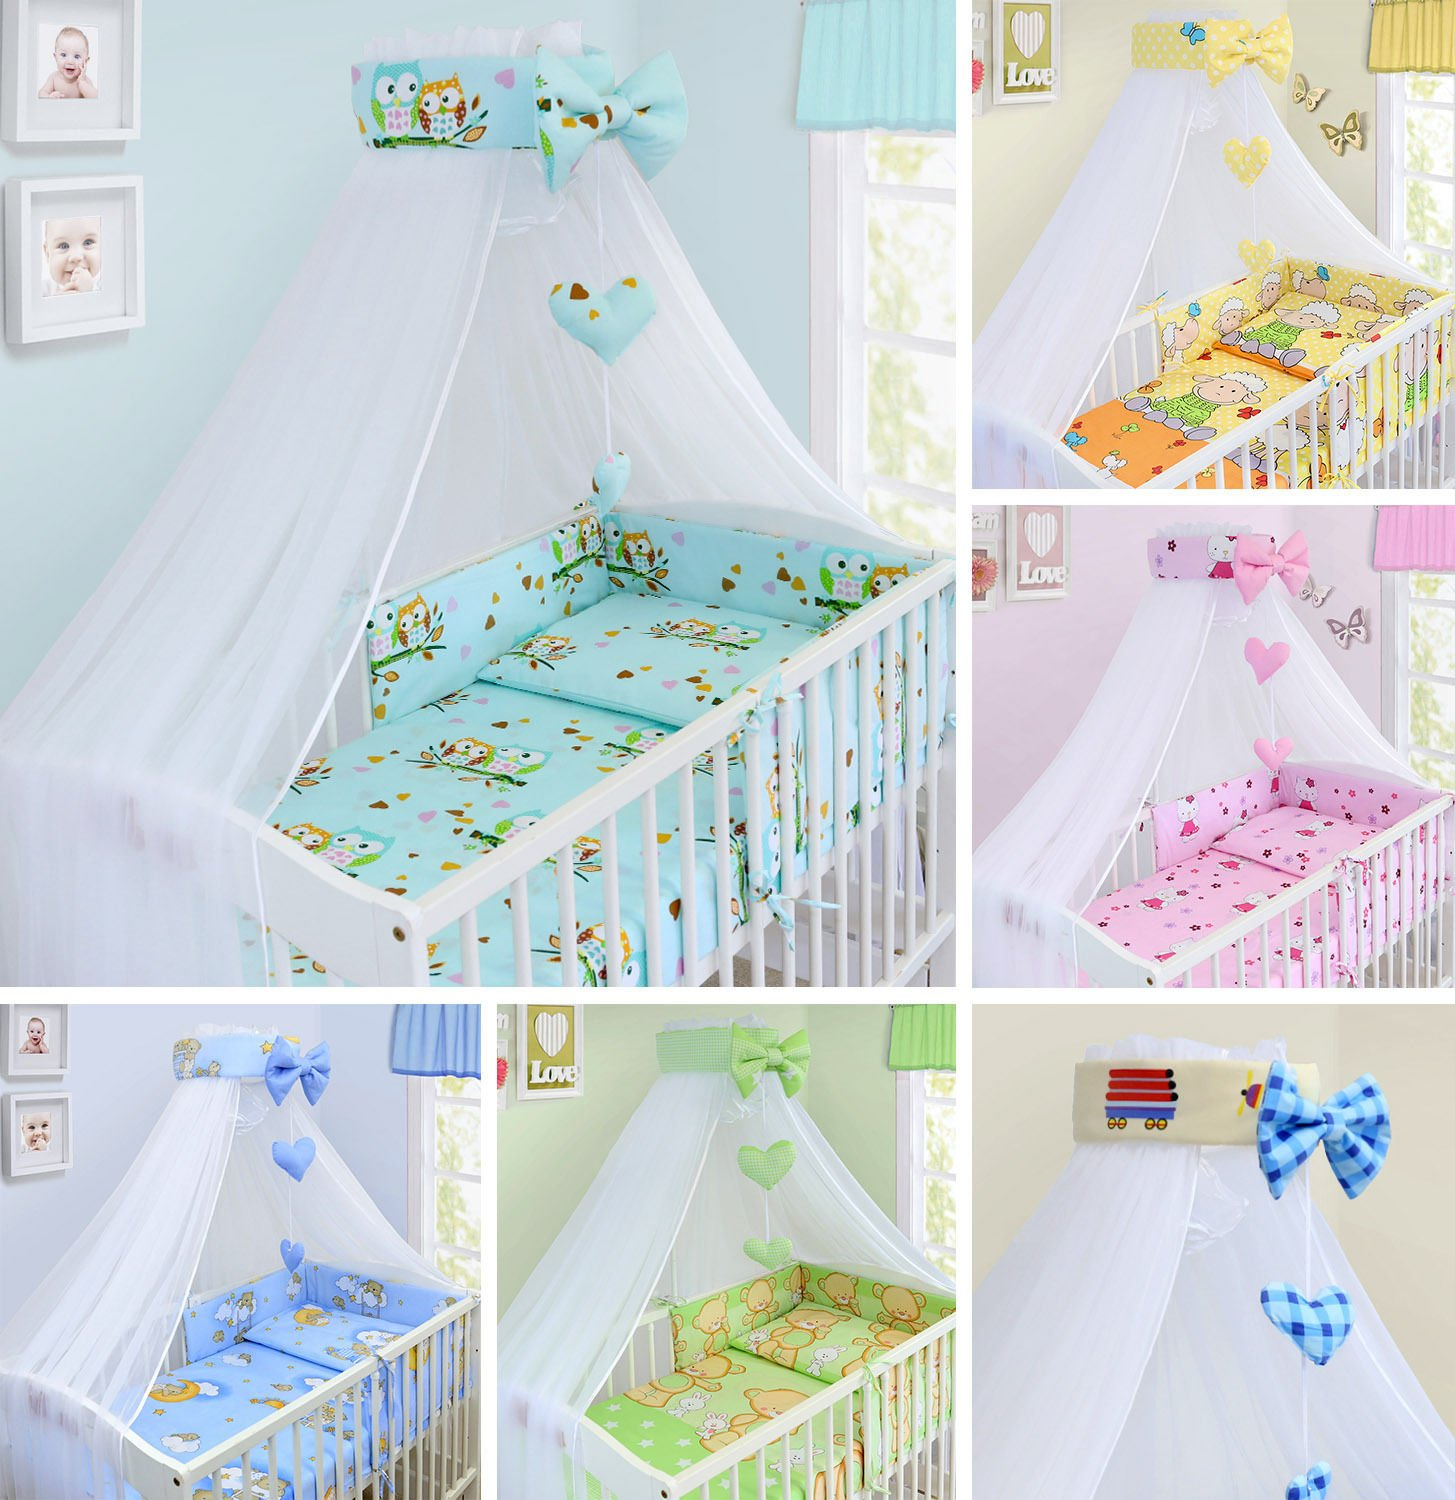 LUXURY 14Pcs BABY BEDDING SET COT BED 140x70cm PILLOW DUVET COVER BUMPER FEEDING PILLOW COT TIDY CHANGING MAT CANOPY (Stars White) TheLittles24